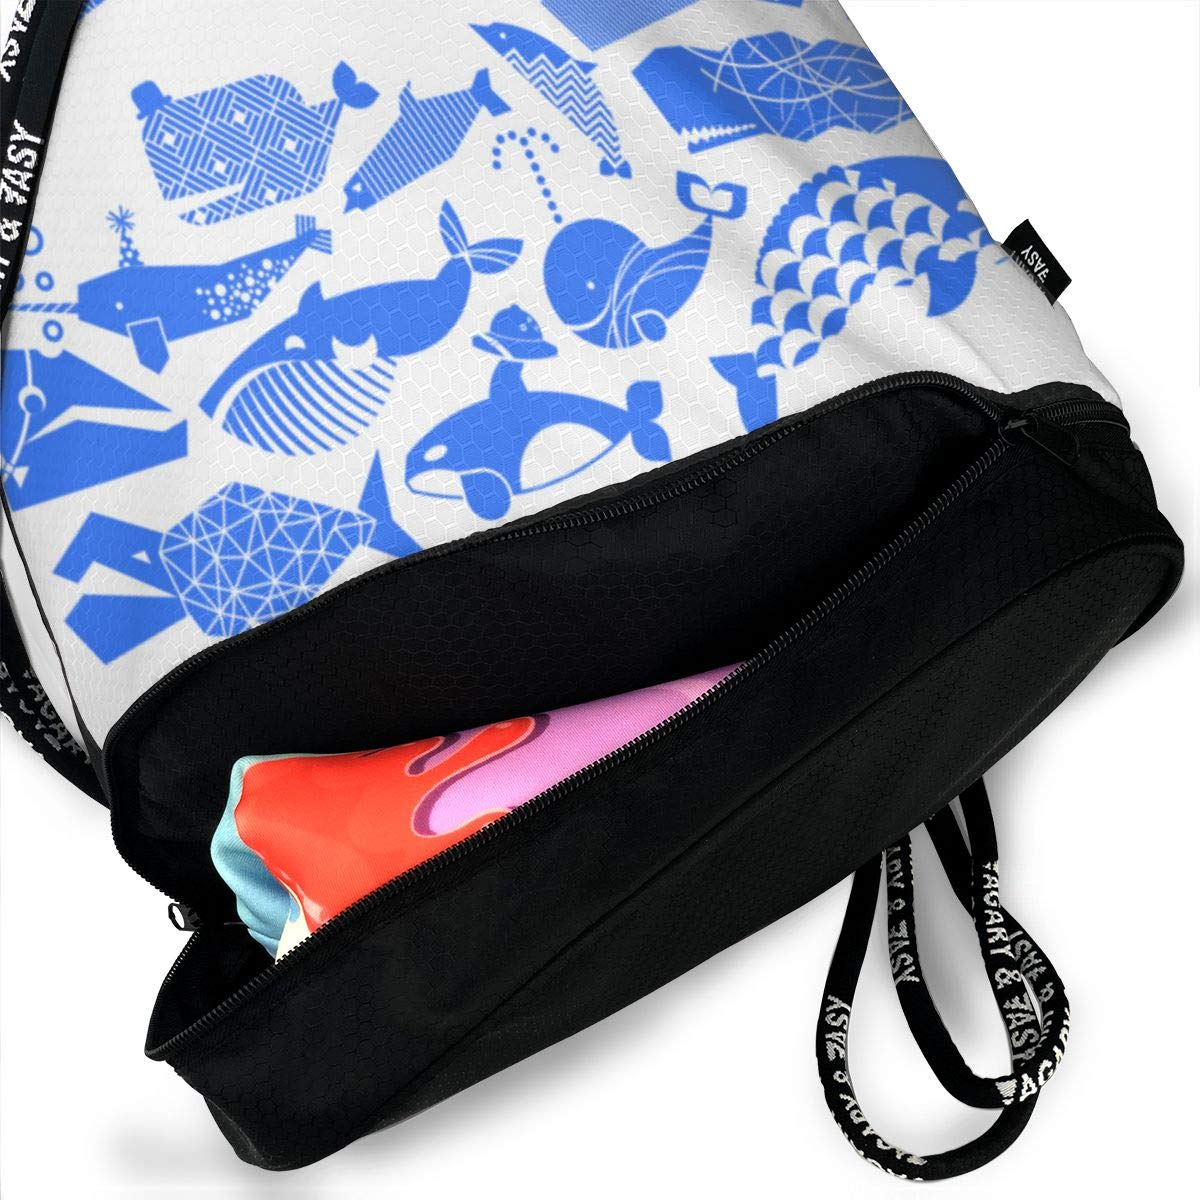 A Geometric Cetacean Parade Bright Blue Drawstring Backpack Sports Athletic Gym Cinch Sack String Storage Bags for Hiking Travel Beach